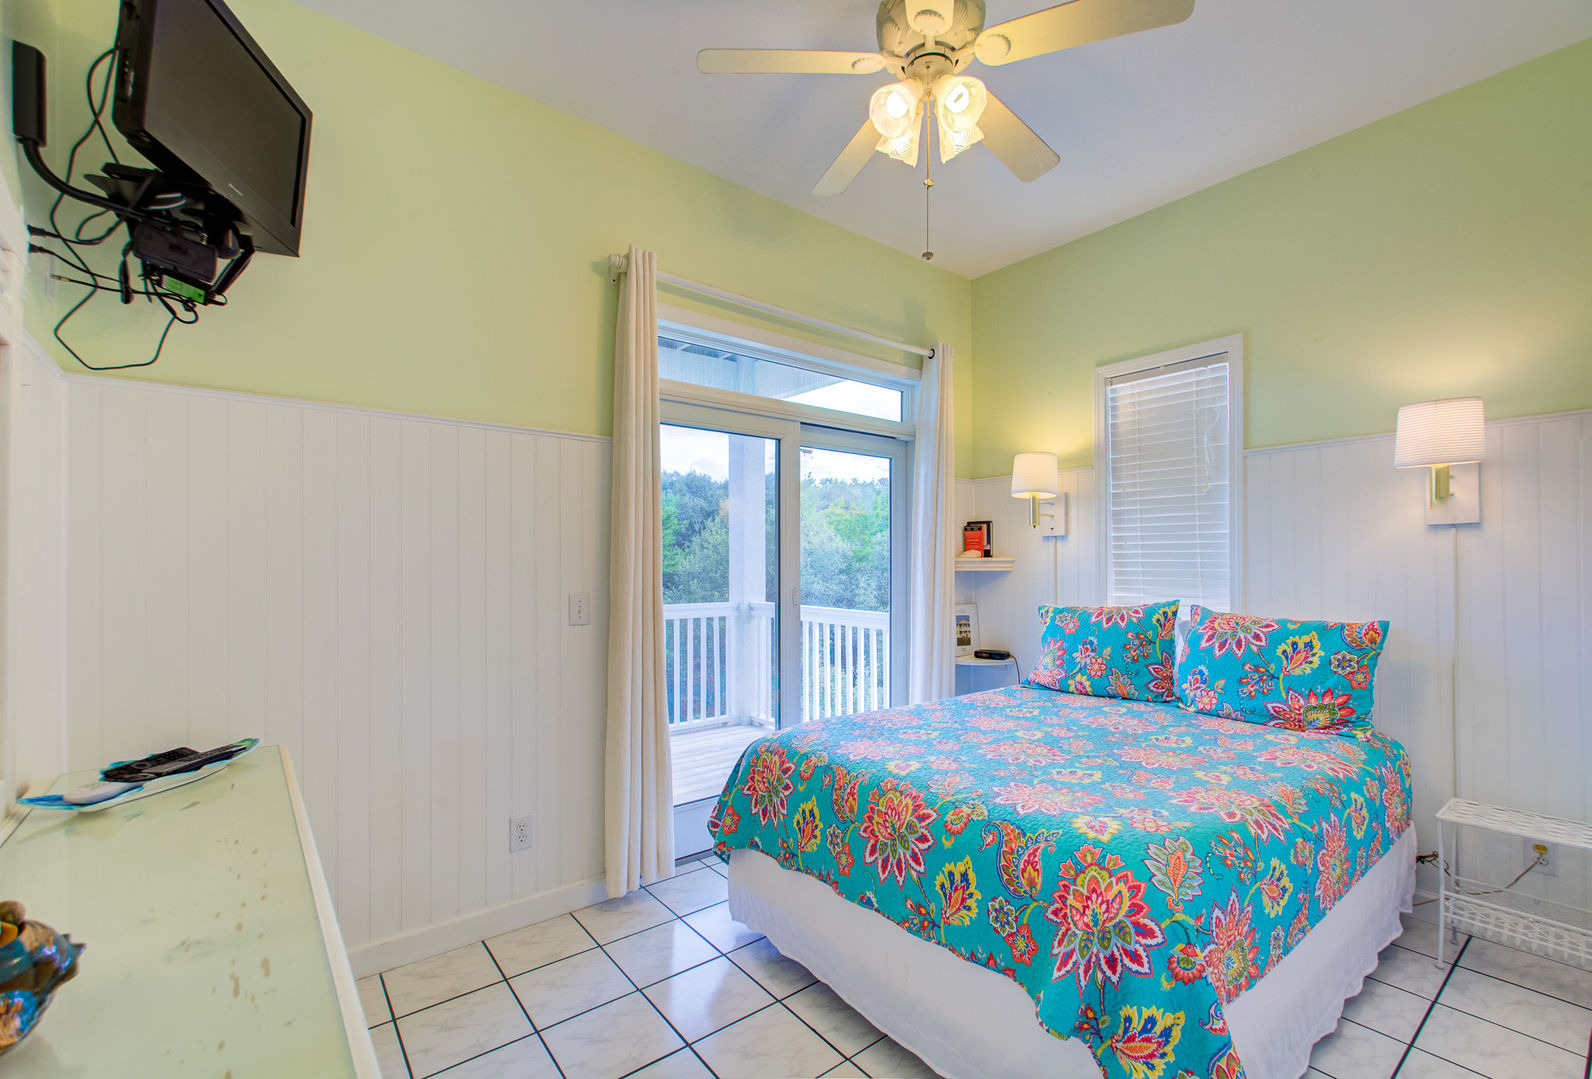 Large Bed, Doors to the Balcony, TV, and Ceiling Fan.